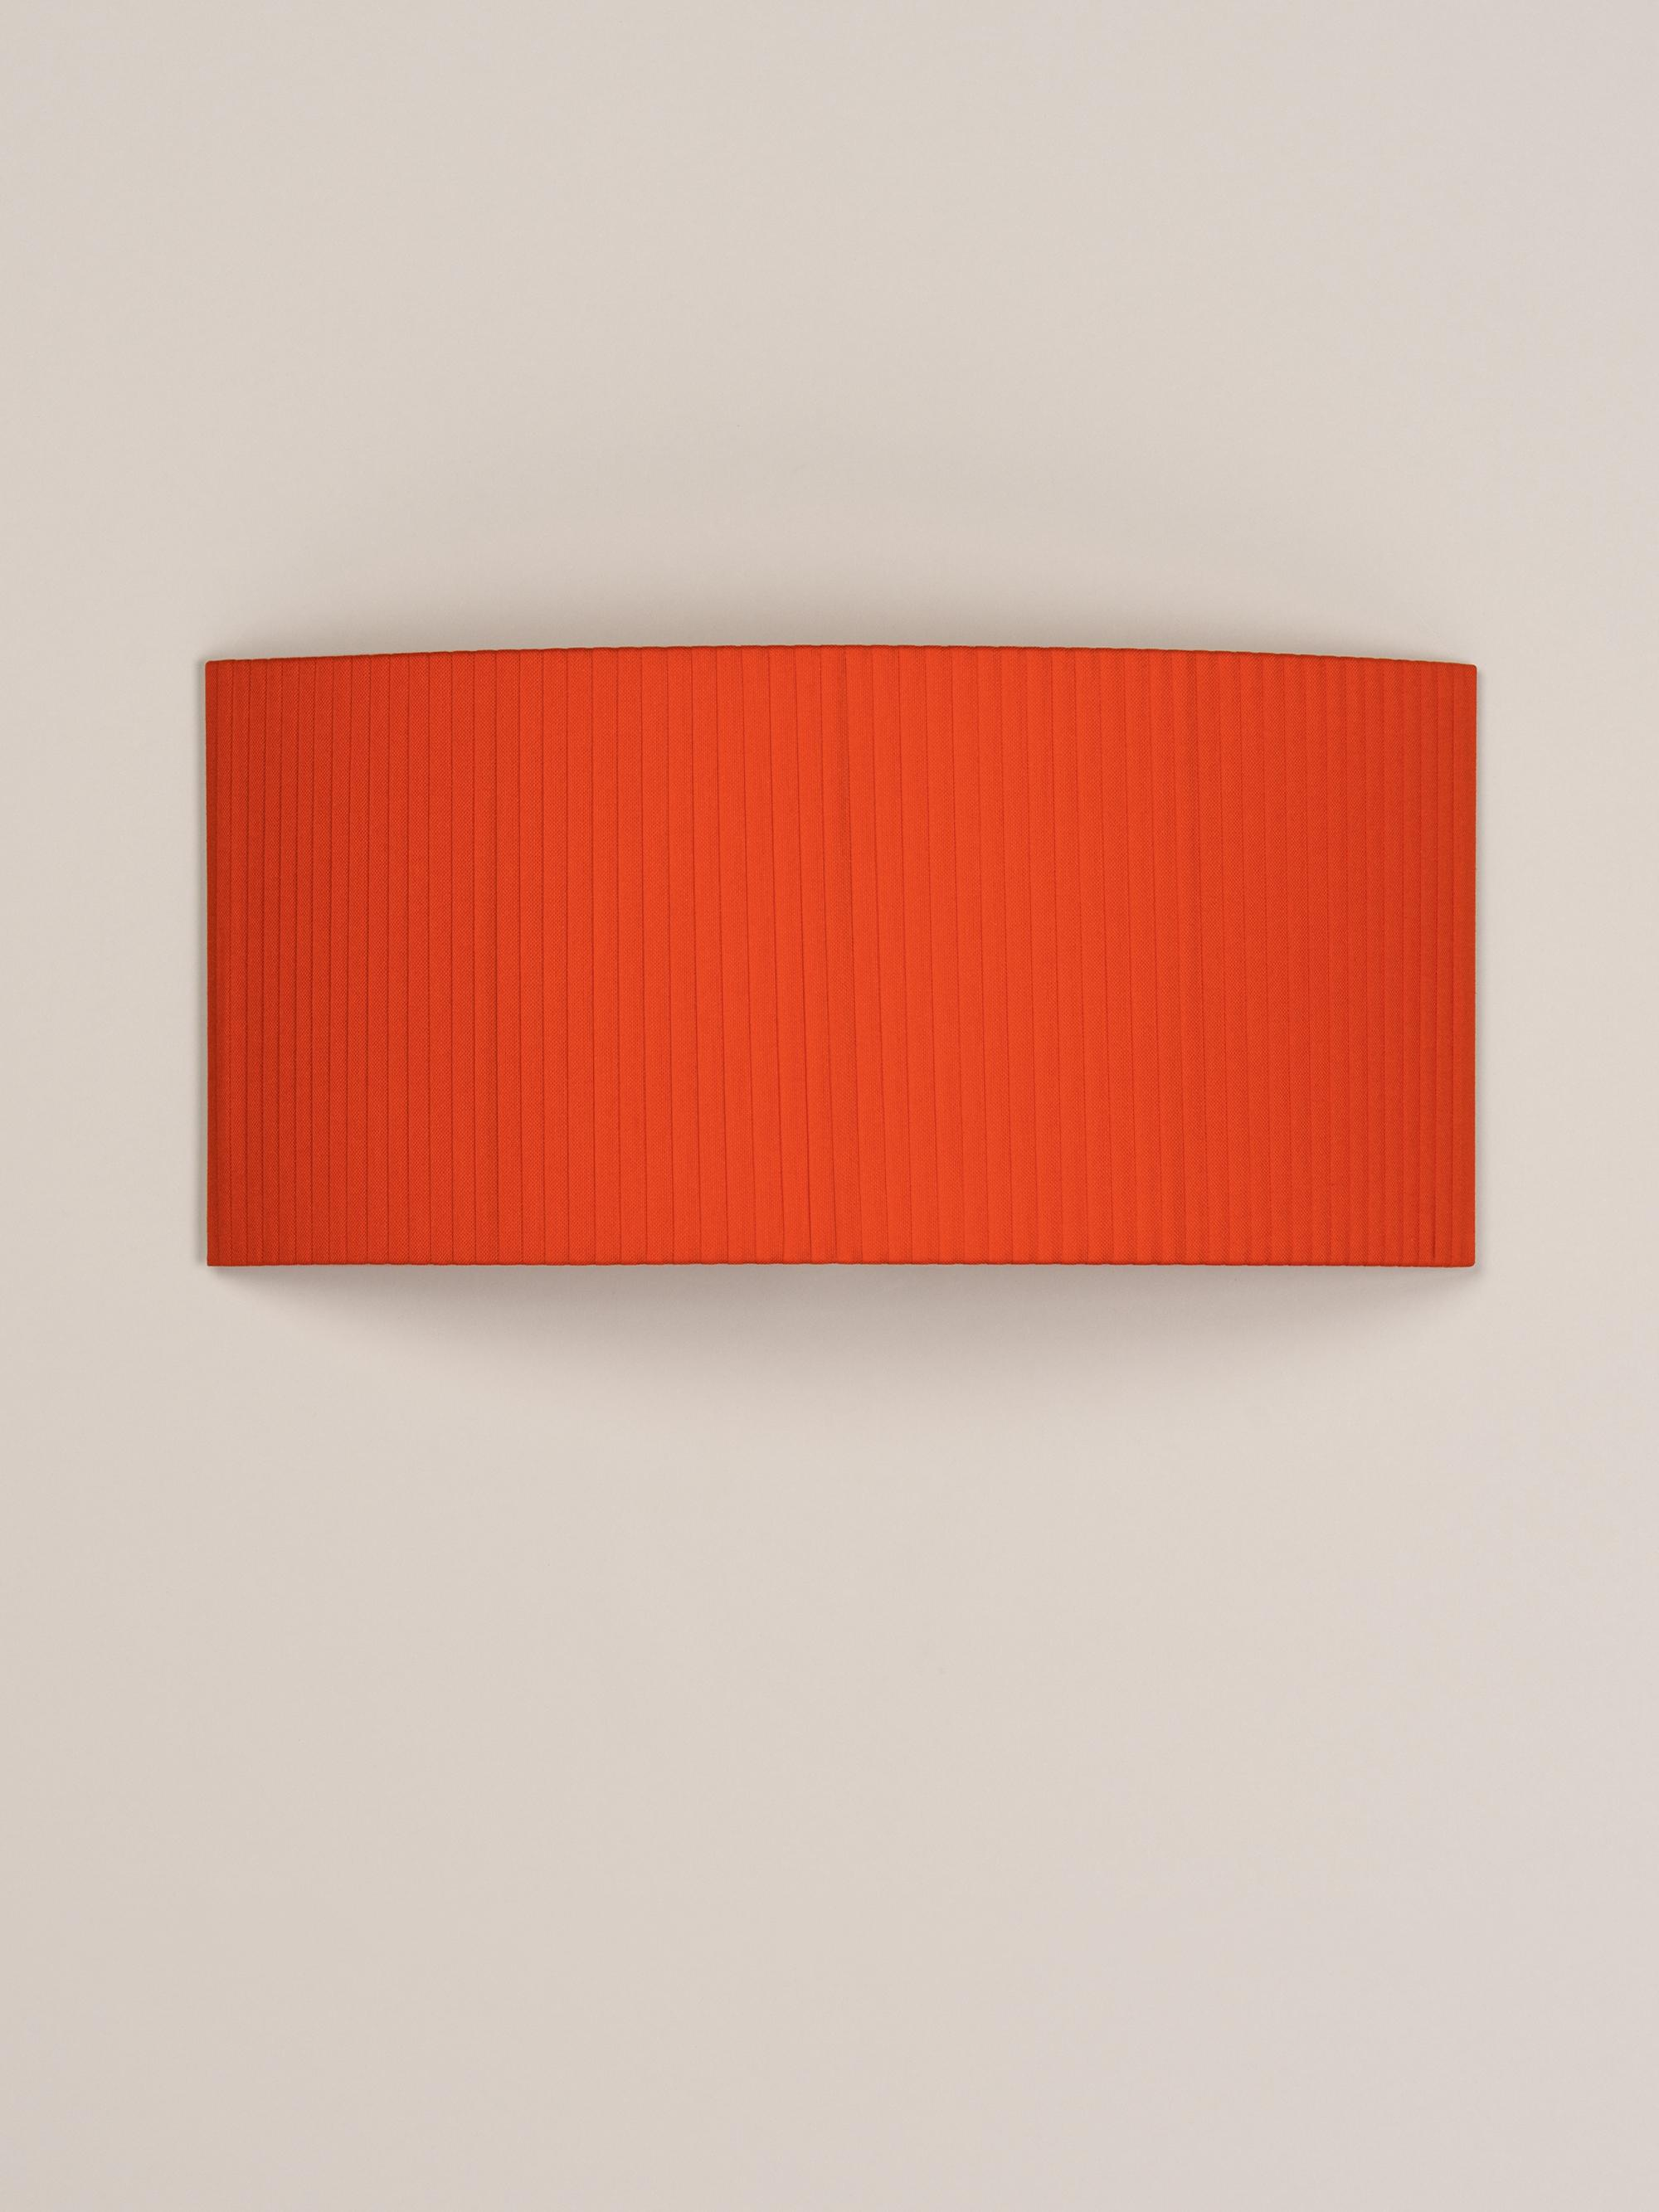 Comodín rectangular | Red-amber ribbon